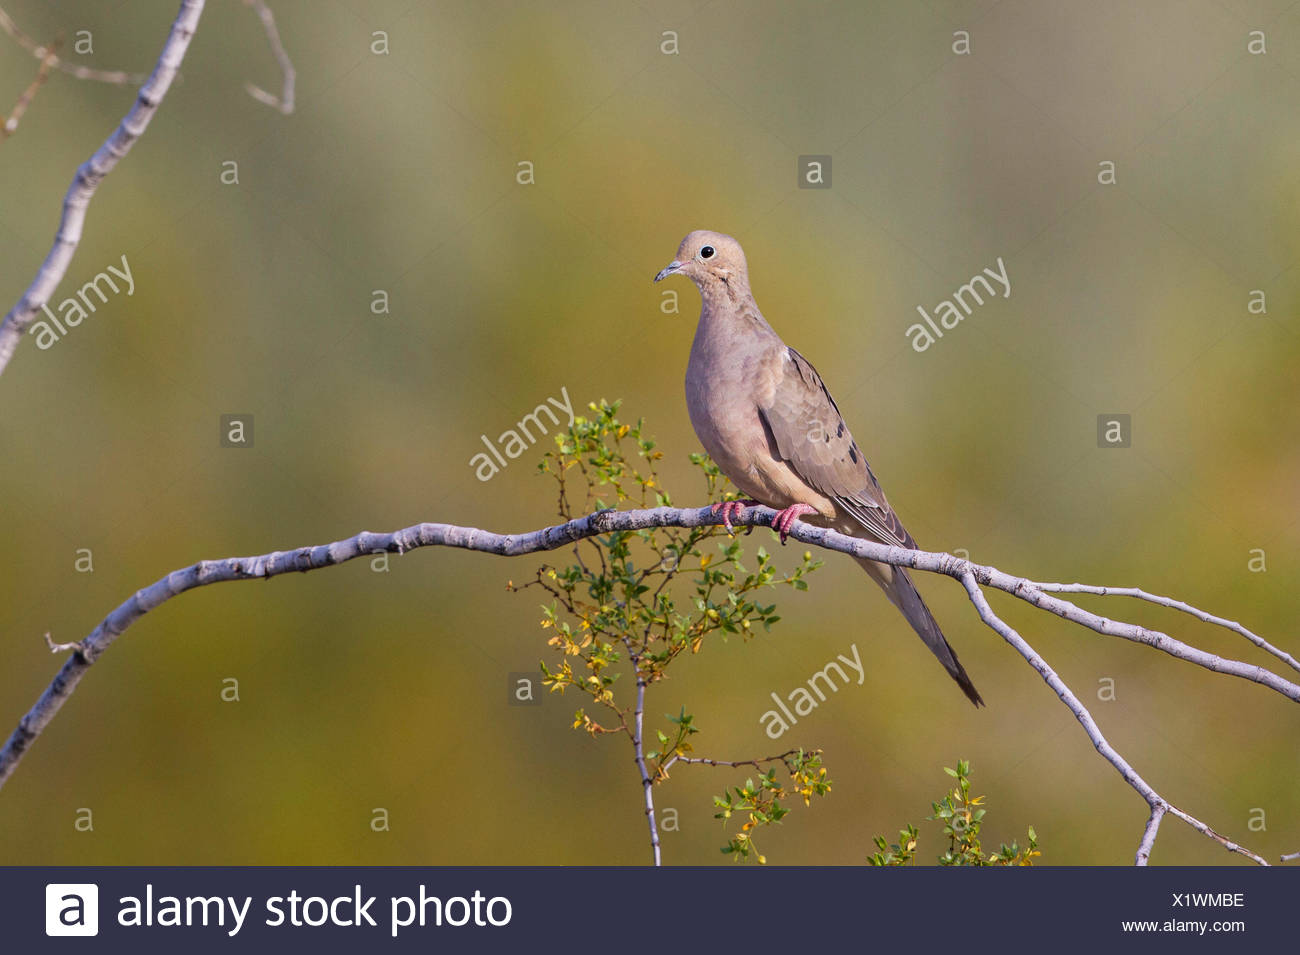 mourning dove (Zenaida macroura), sits on a branch, USA, Arizona - Stock Image